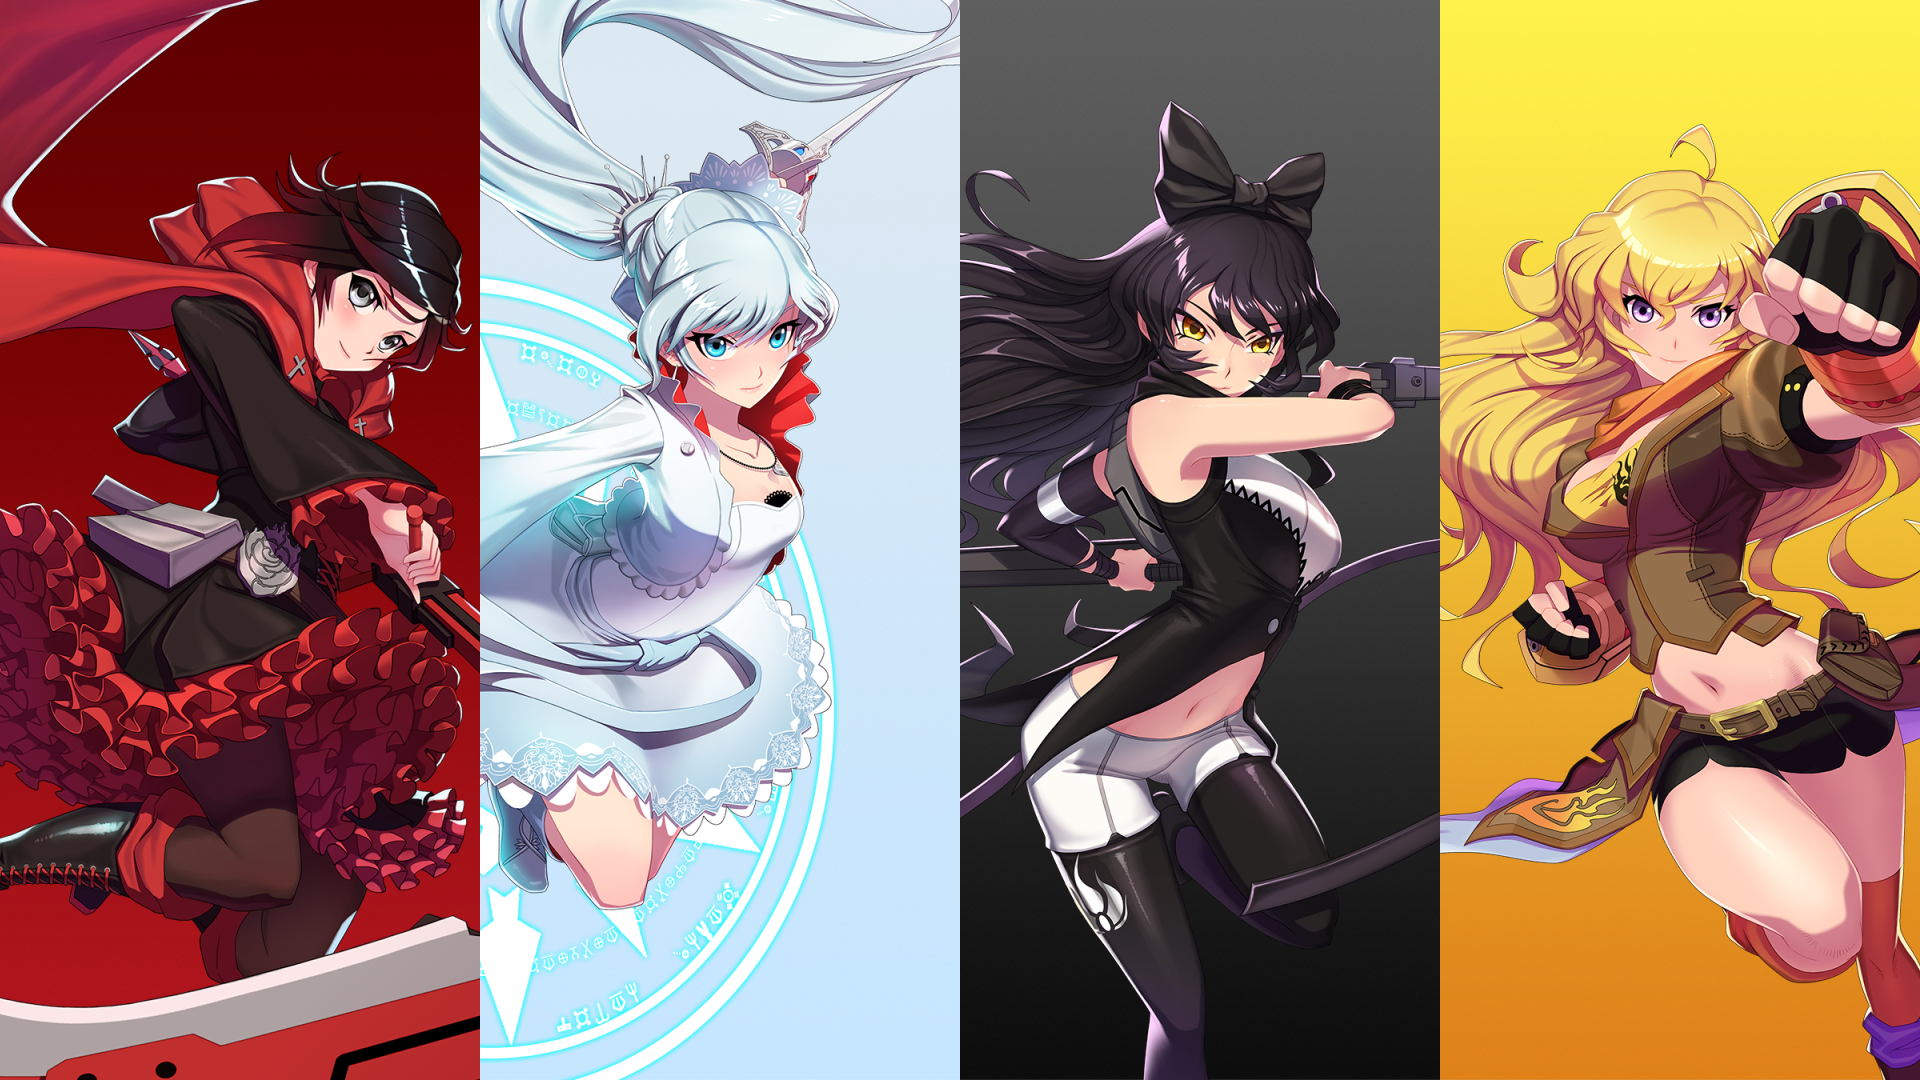 RWBY images Amity Arena Wallpaper HD wallpaper and background photos